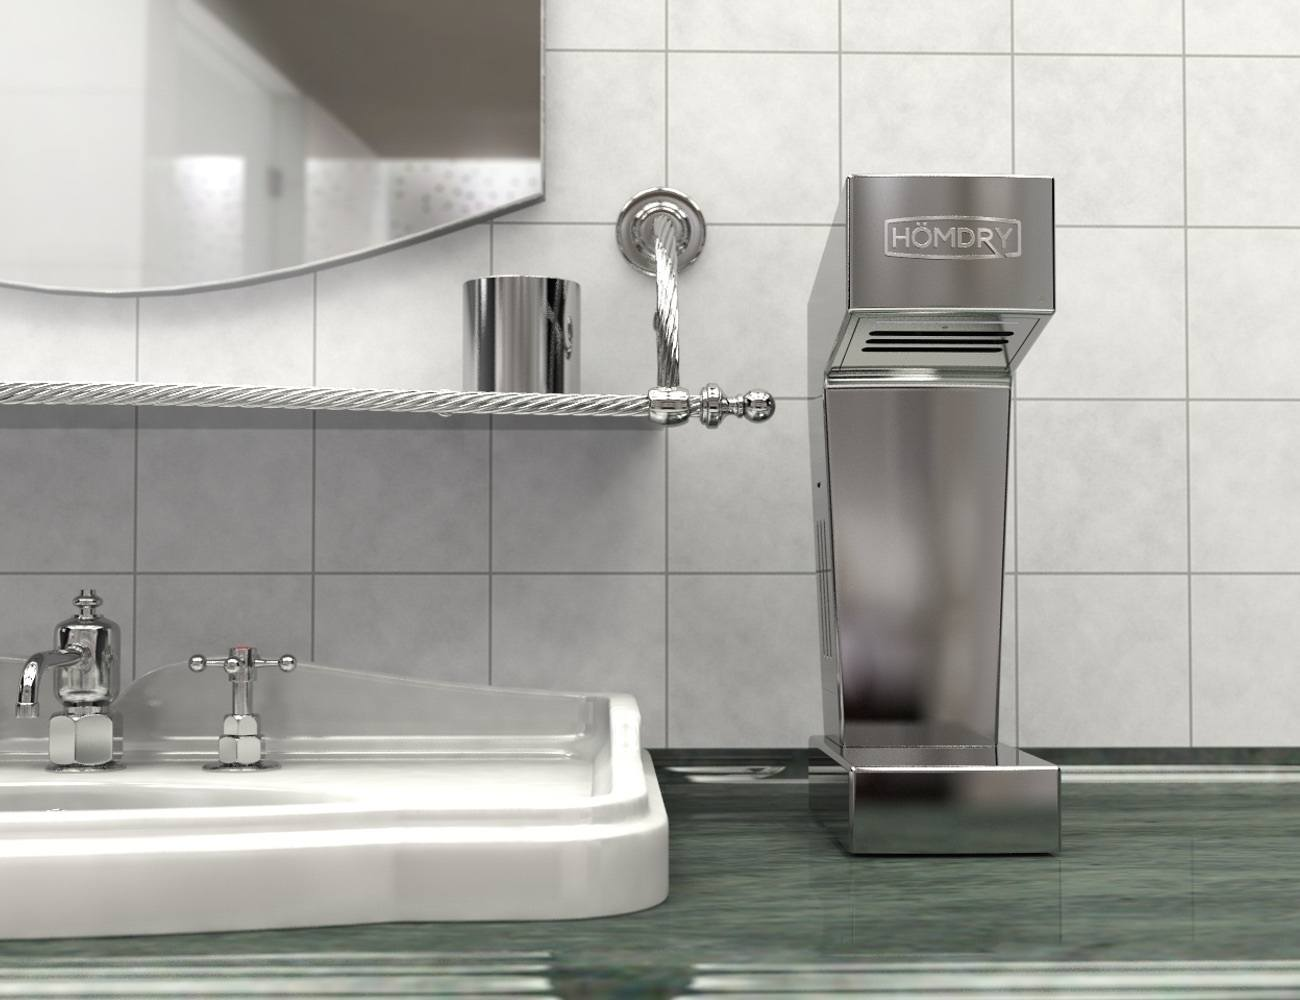 Homdry The Perfect Home Hand Dryer Gadget Flow